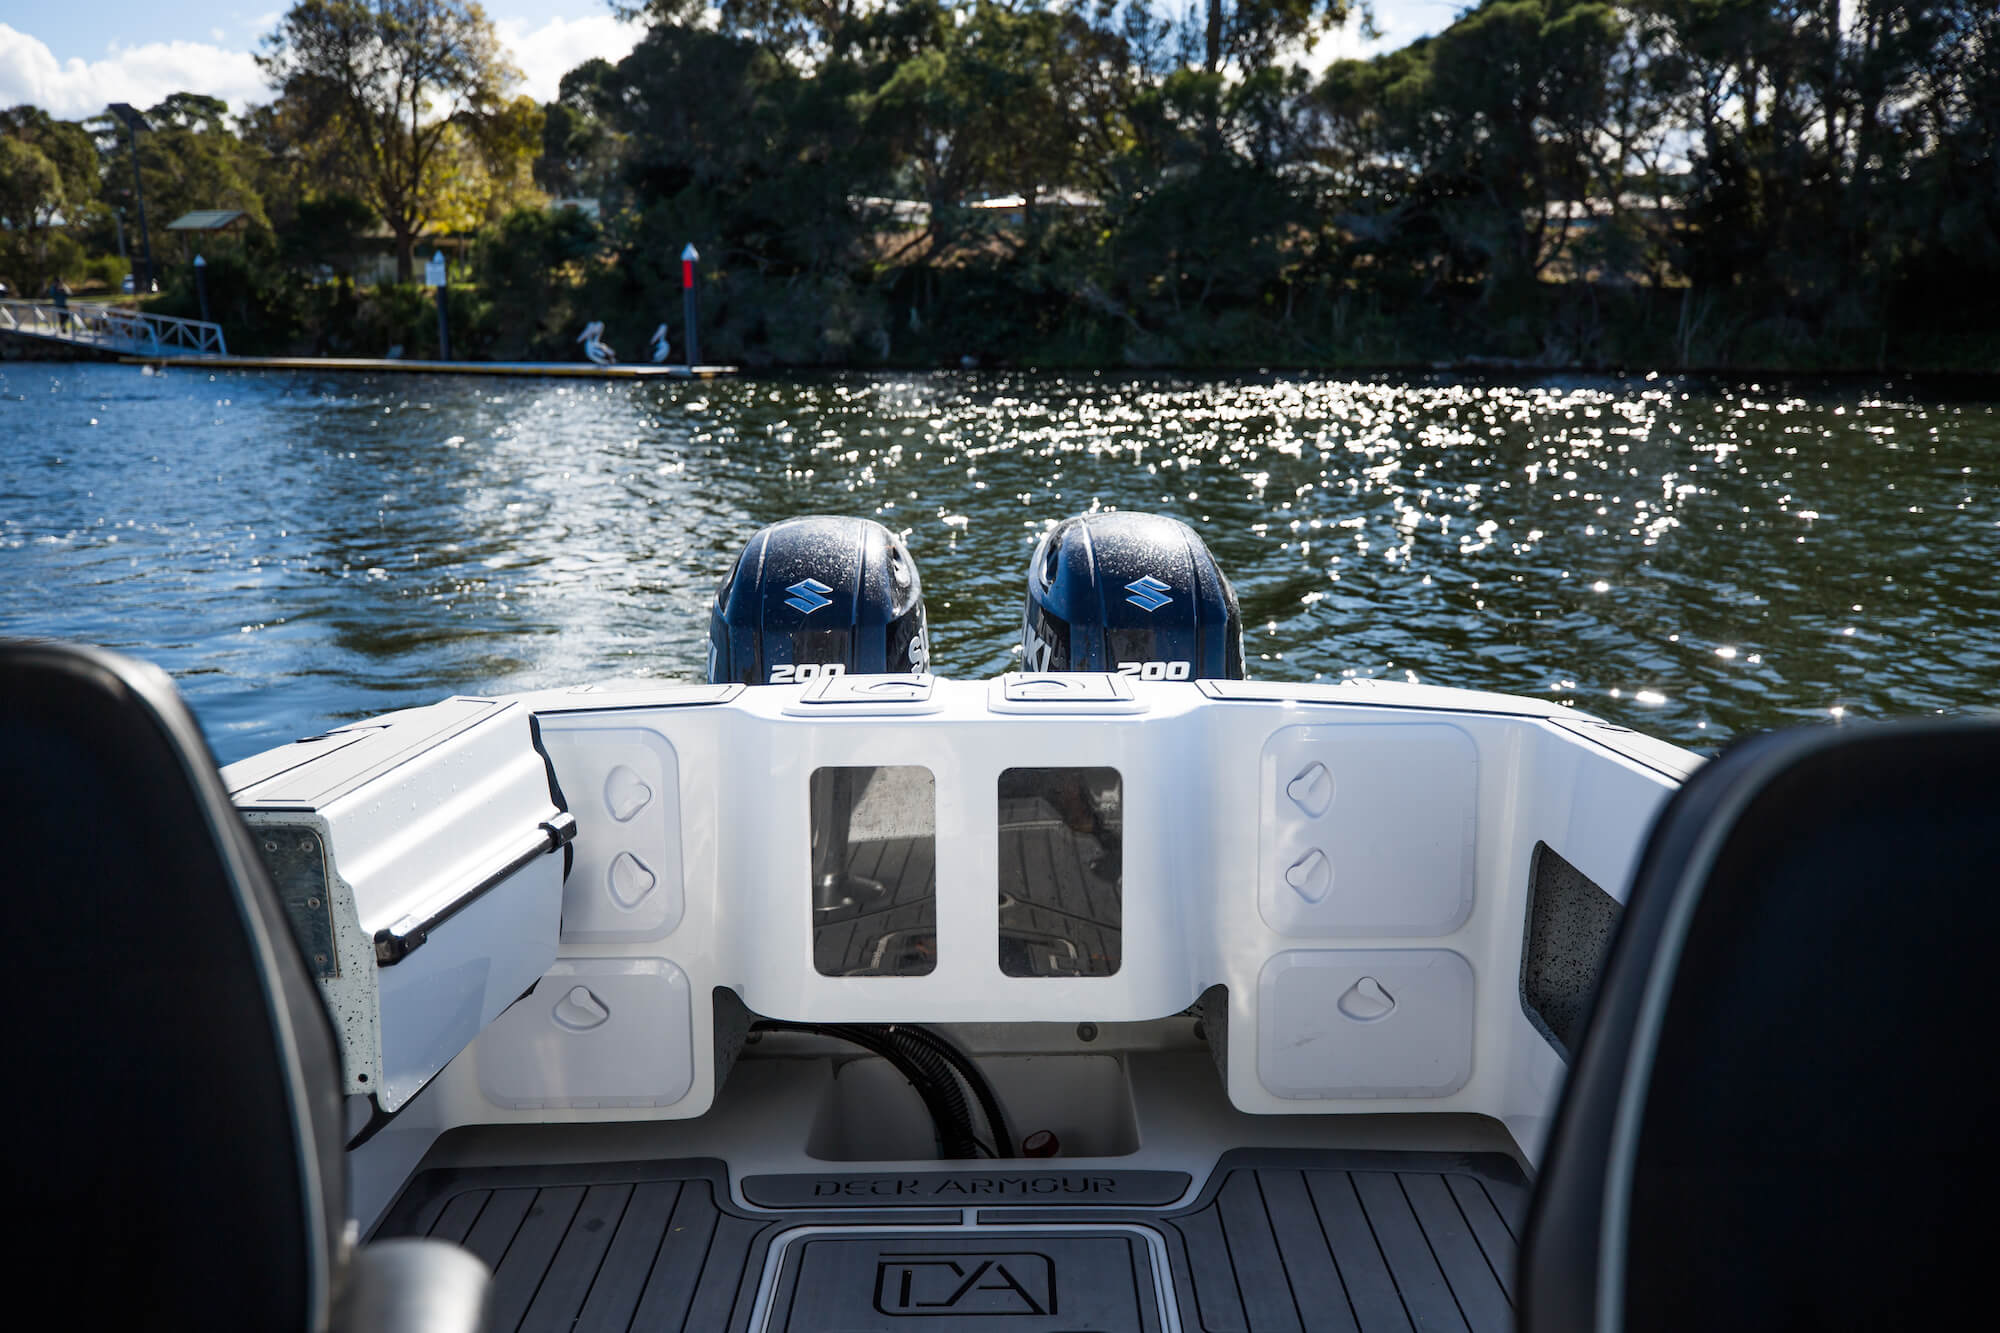 Stern of the Edencraft 233 Formula Platinum boat with twin live bait tanks and storage pockets